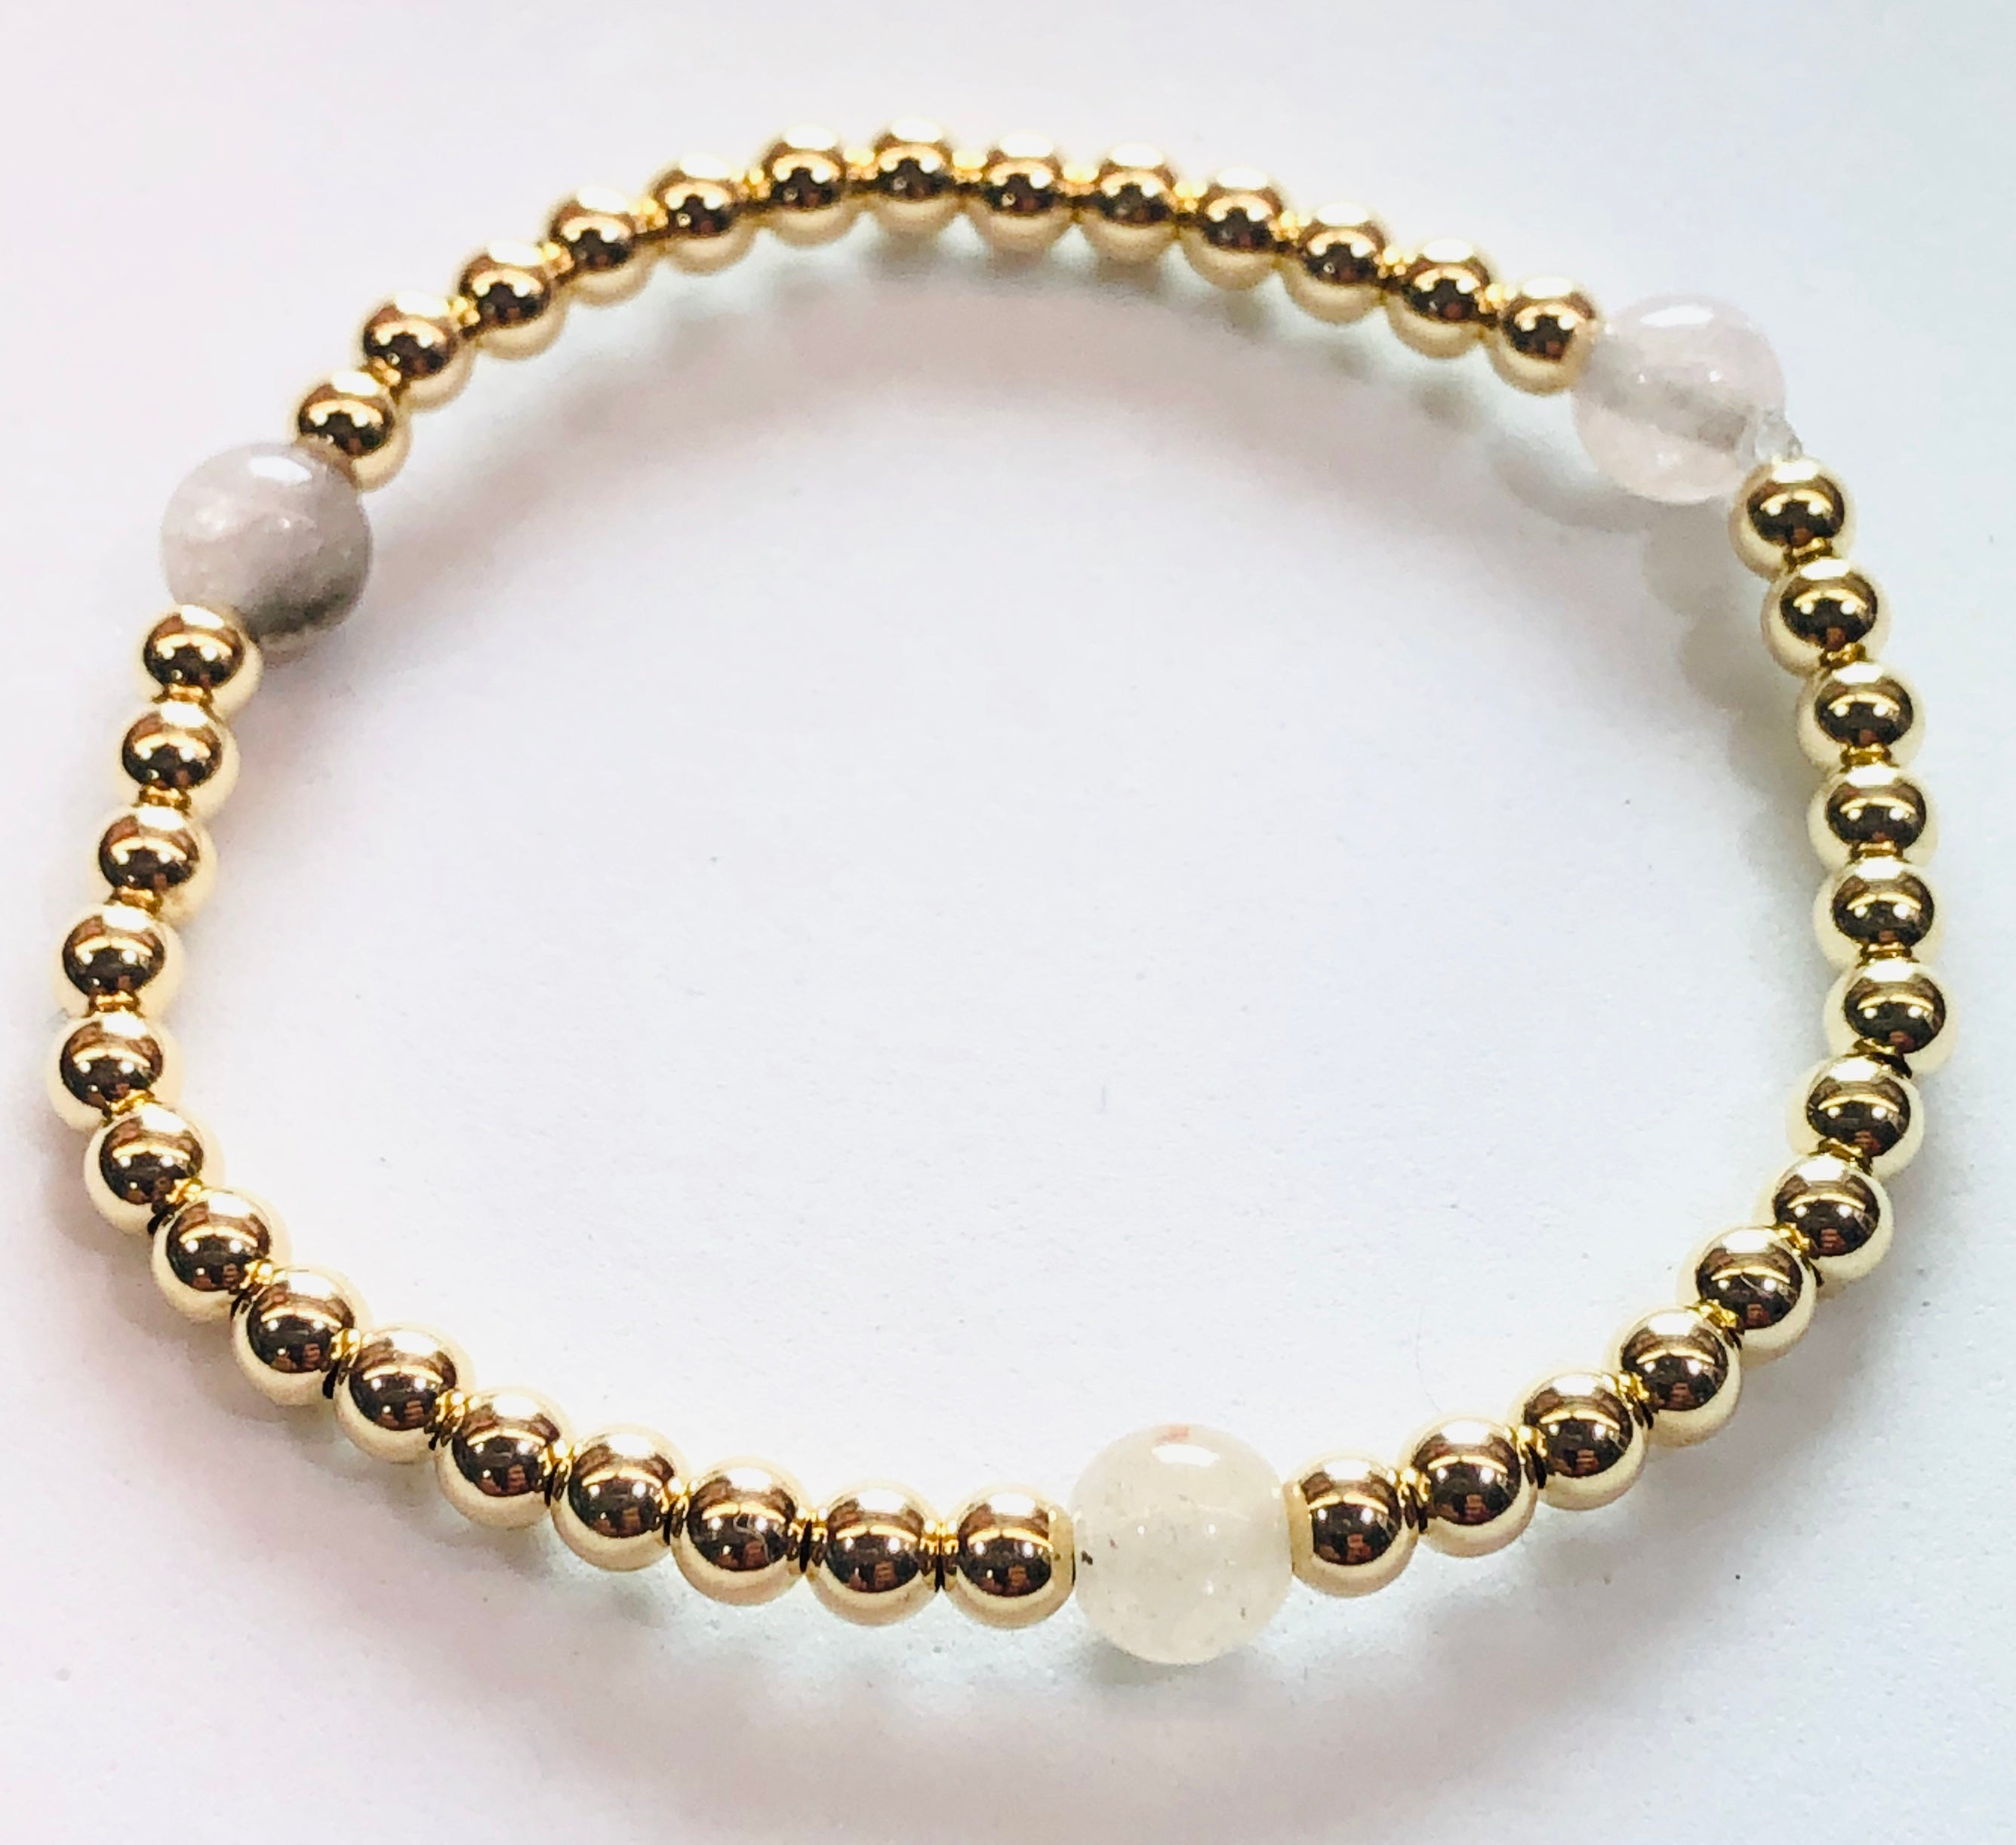 4mm 14kt Gold Filled Bead Bracelet with 3 6mm Pink Opal Jade Beads